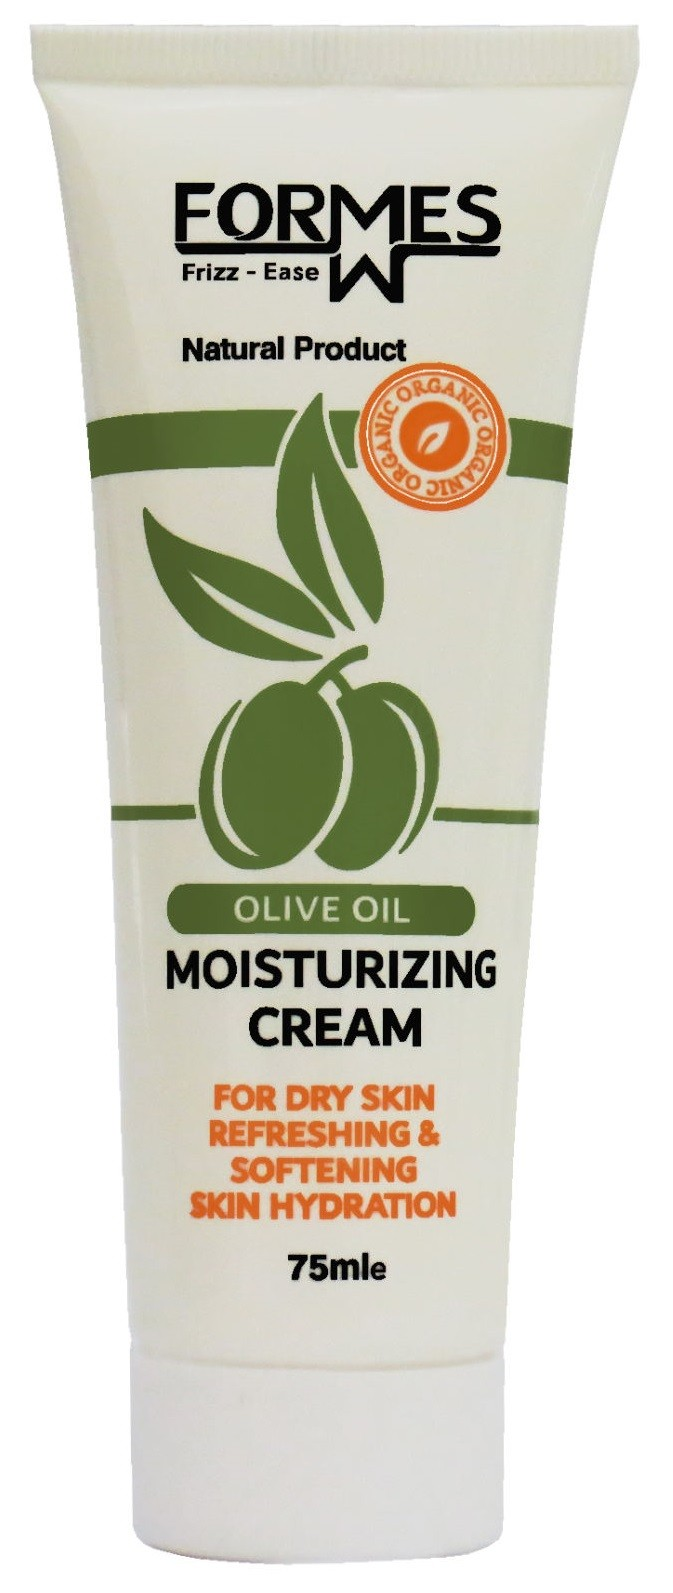 products  The thiopsy cream of olive forms with award